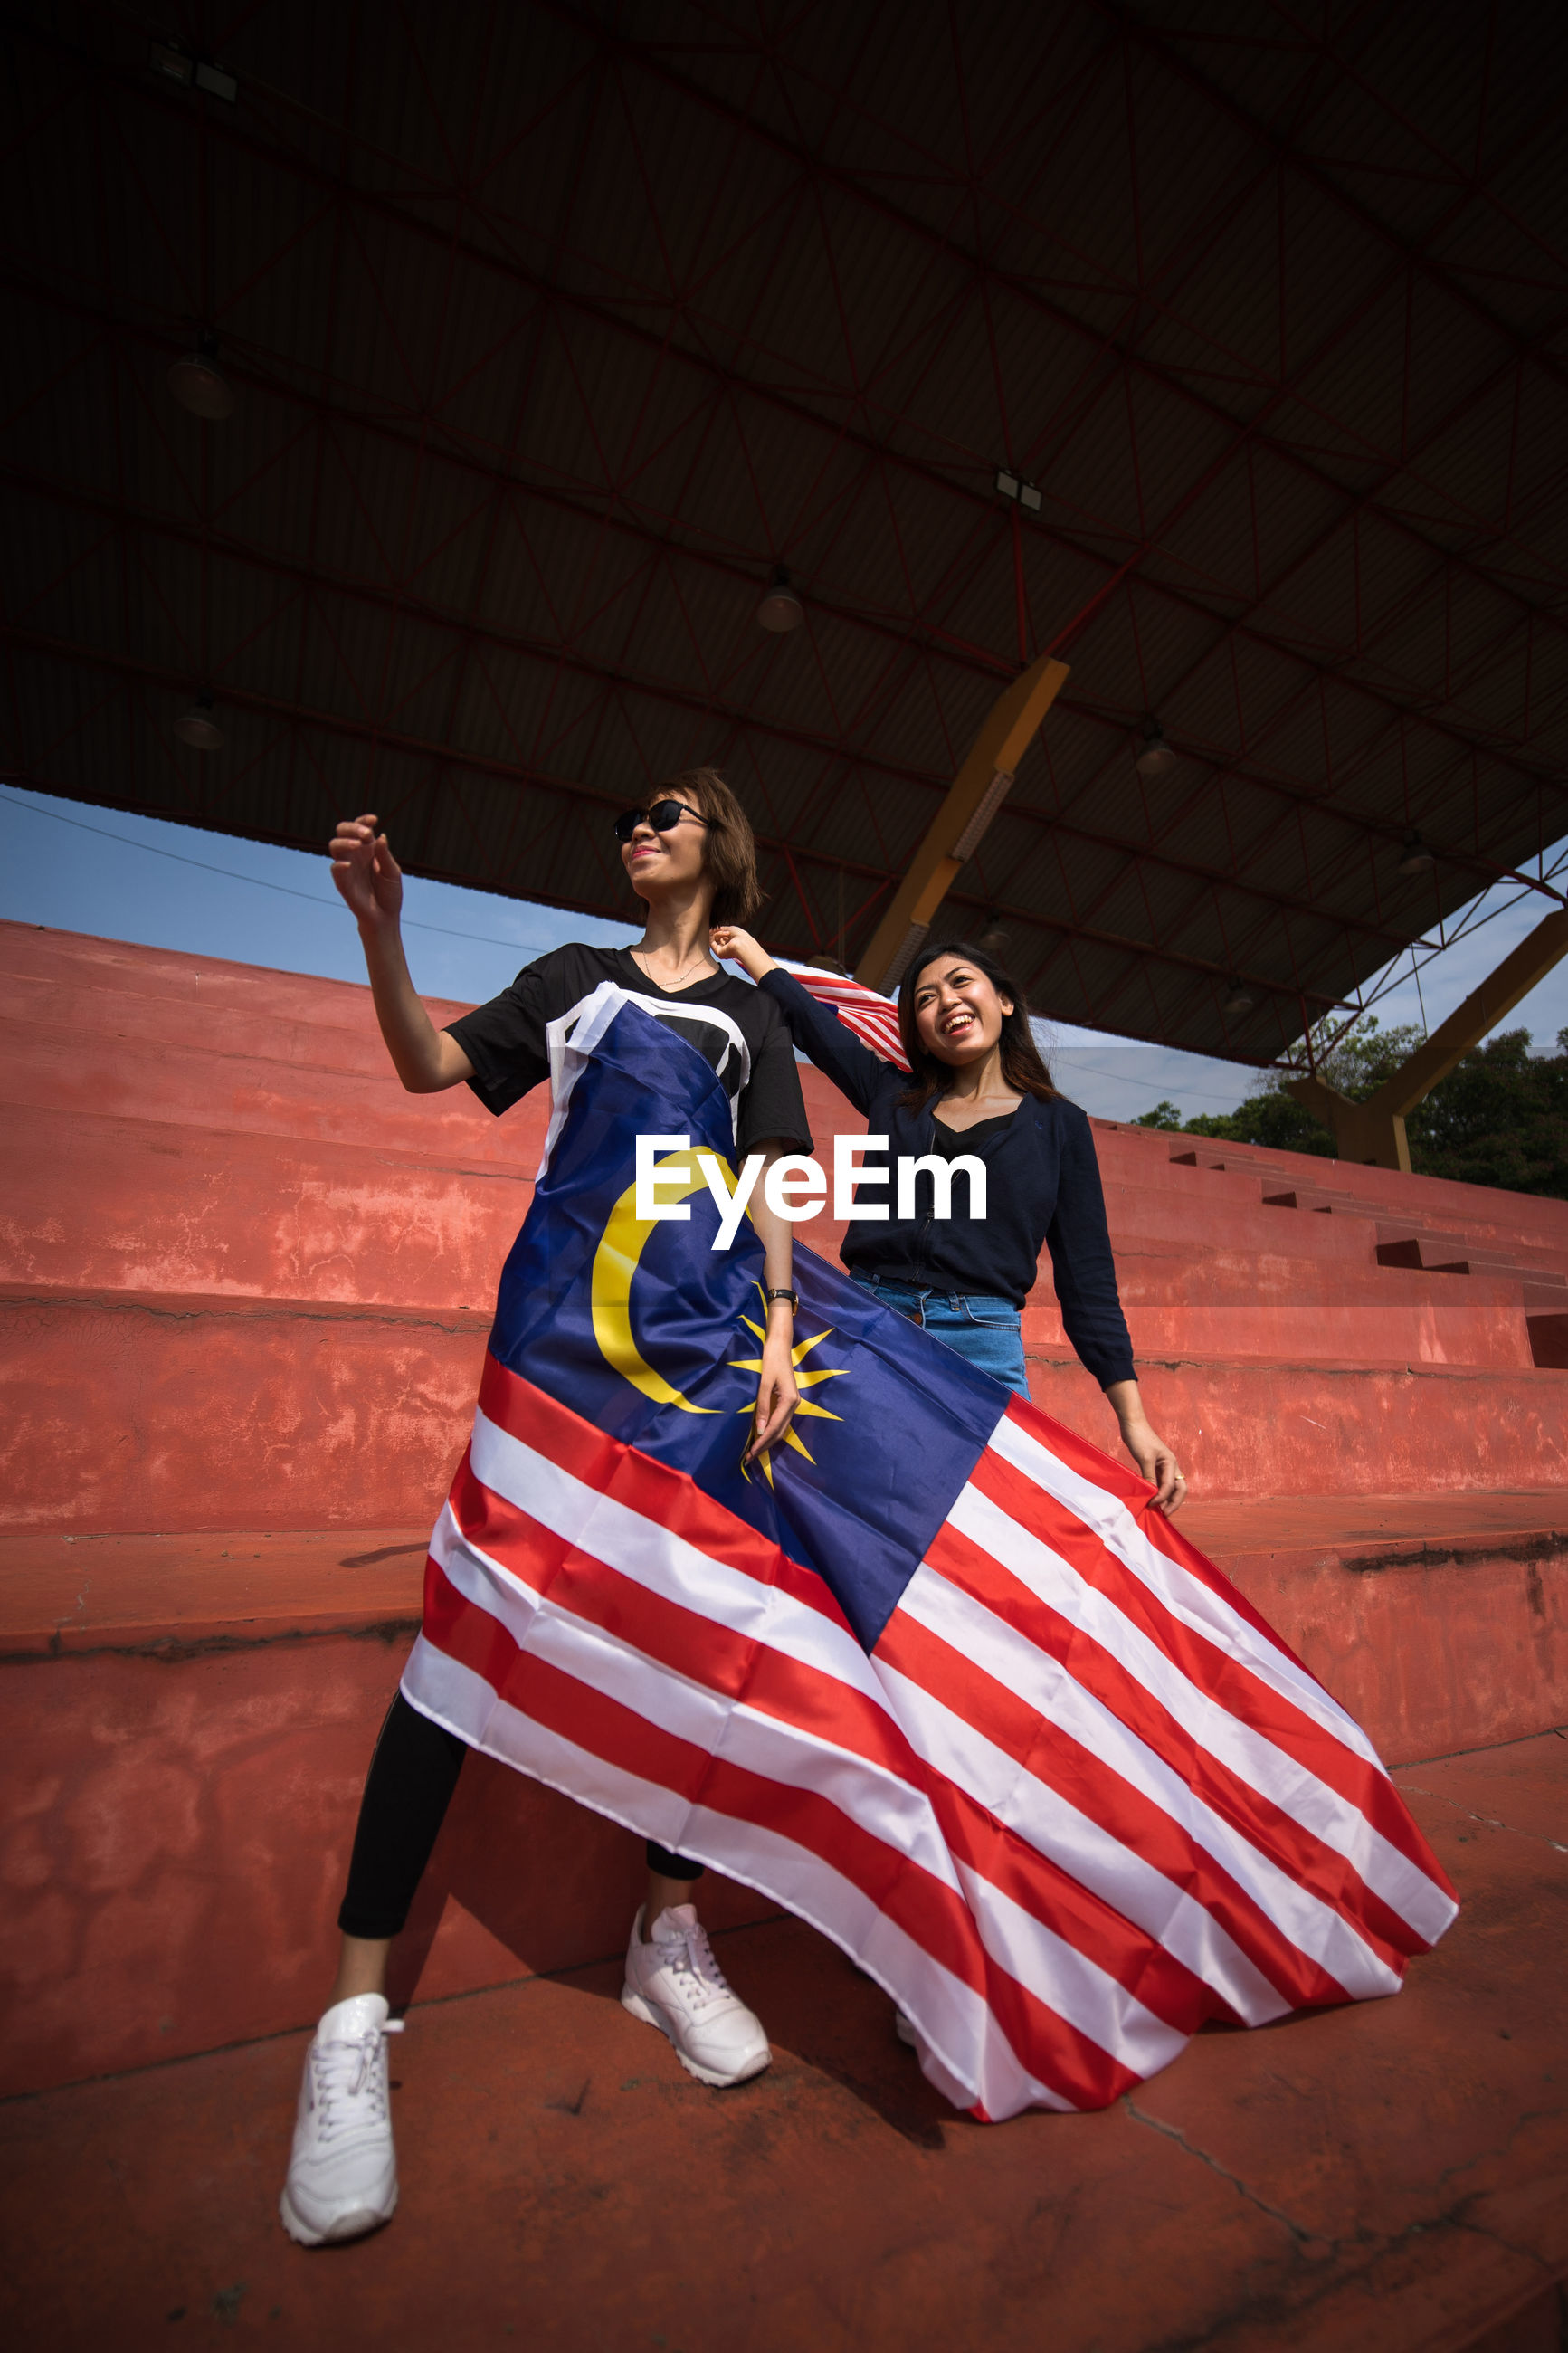 Friends with malaysian flag standing in stadium